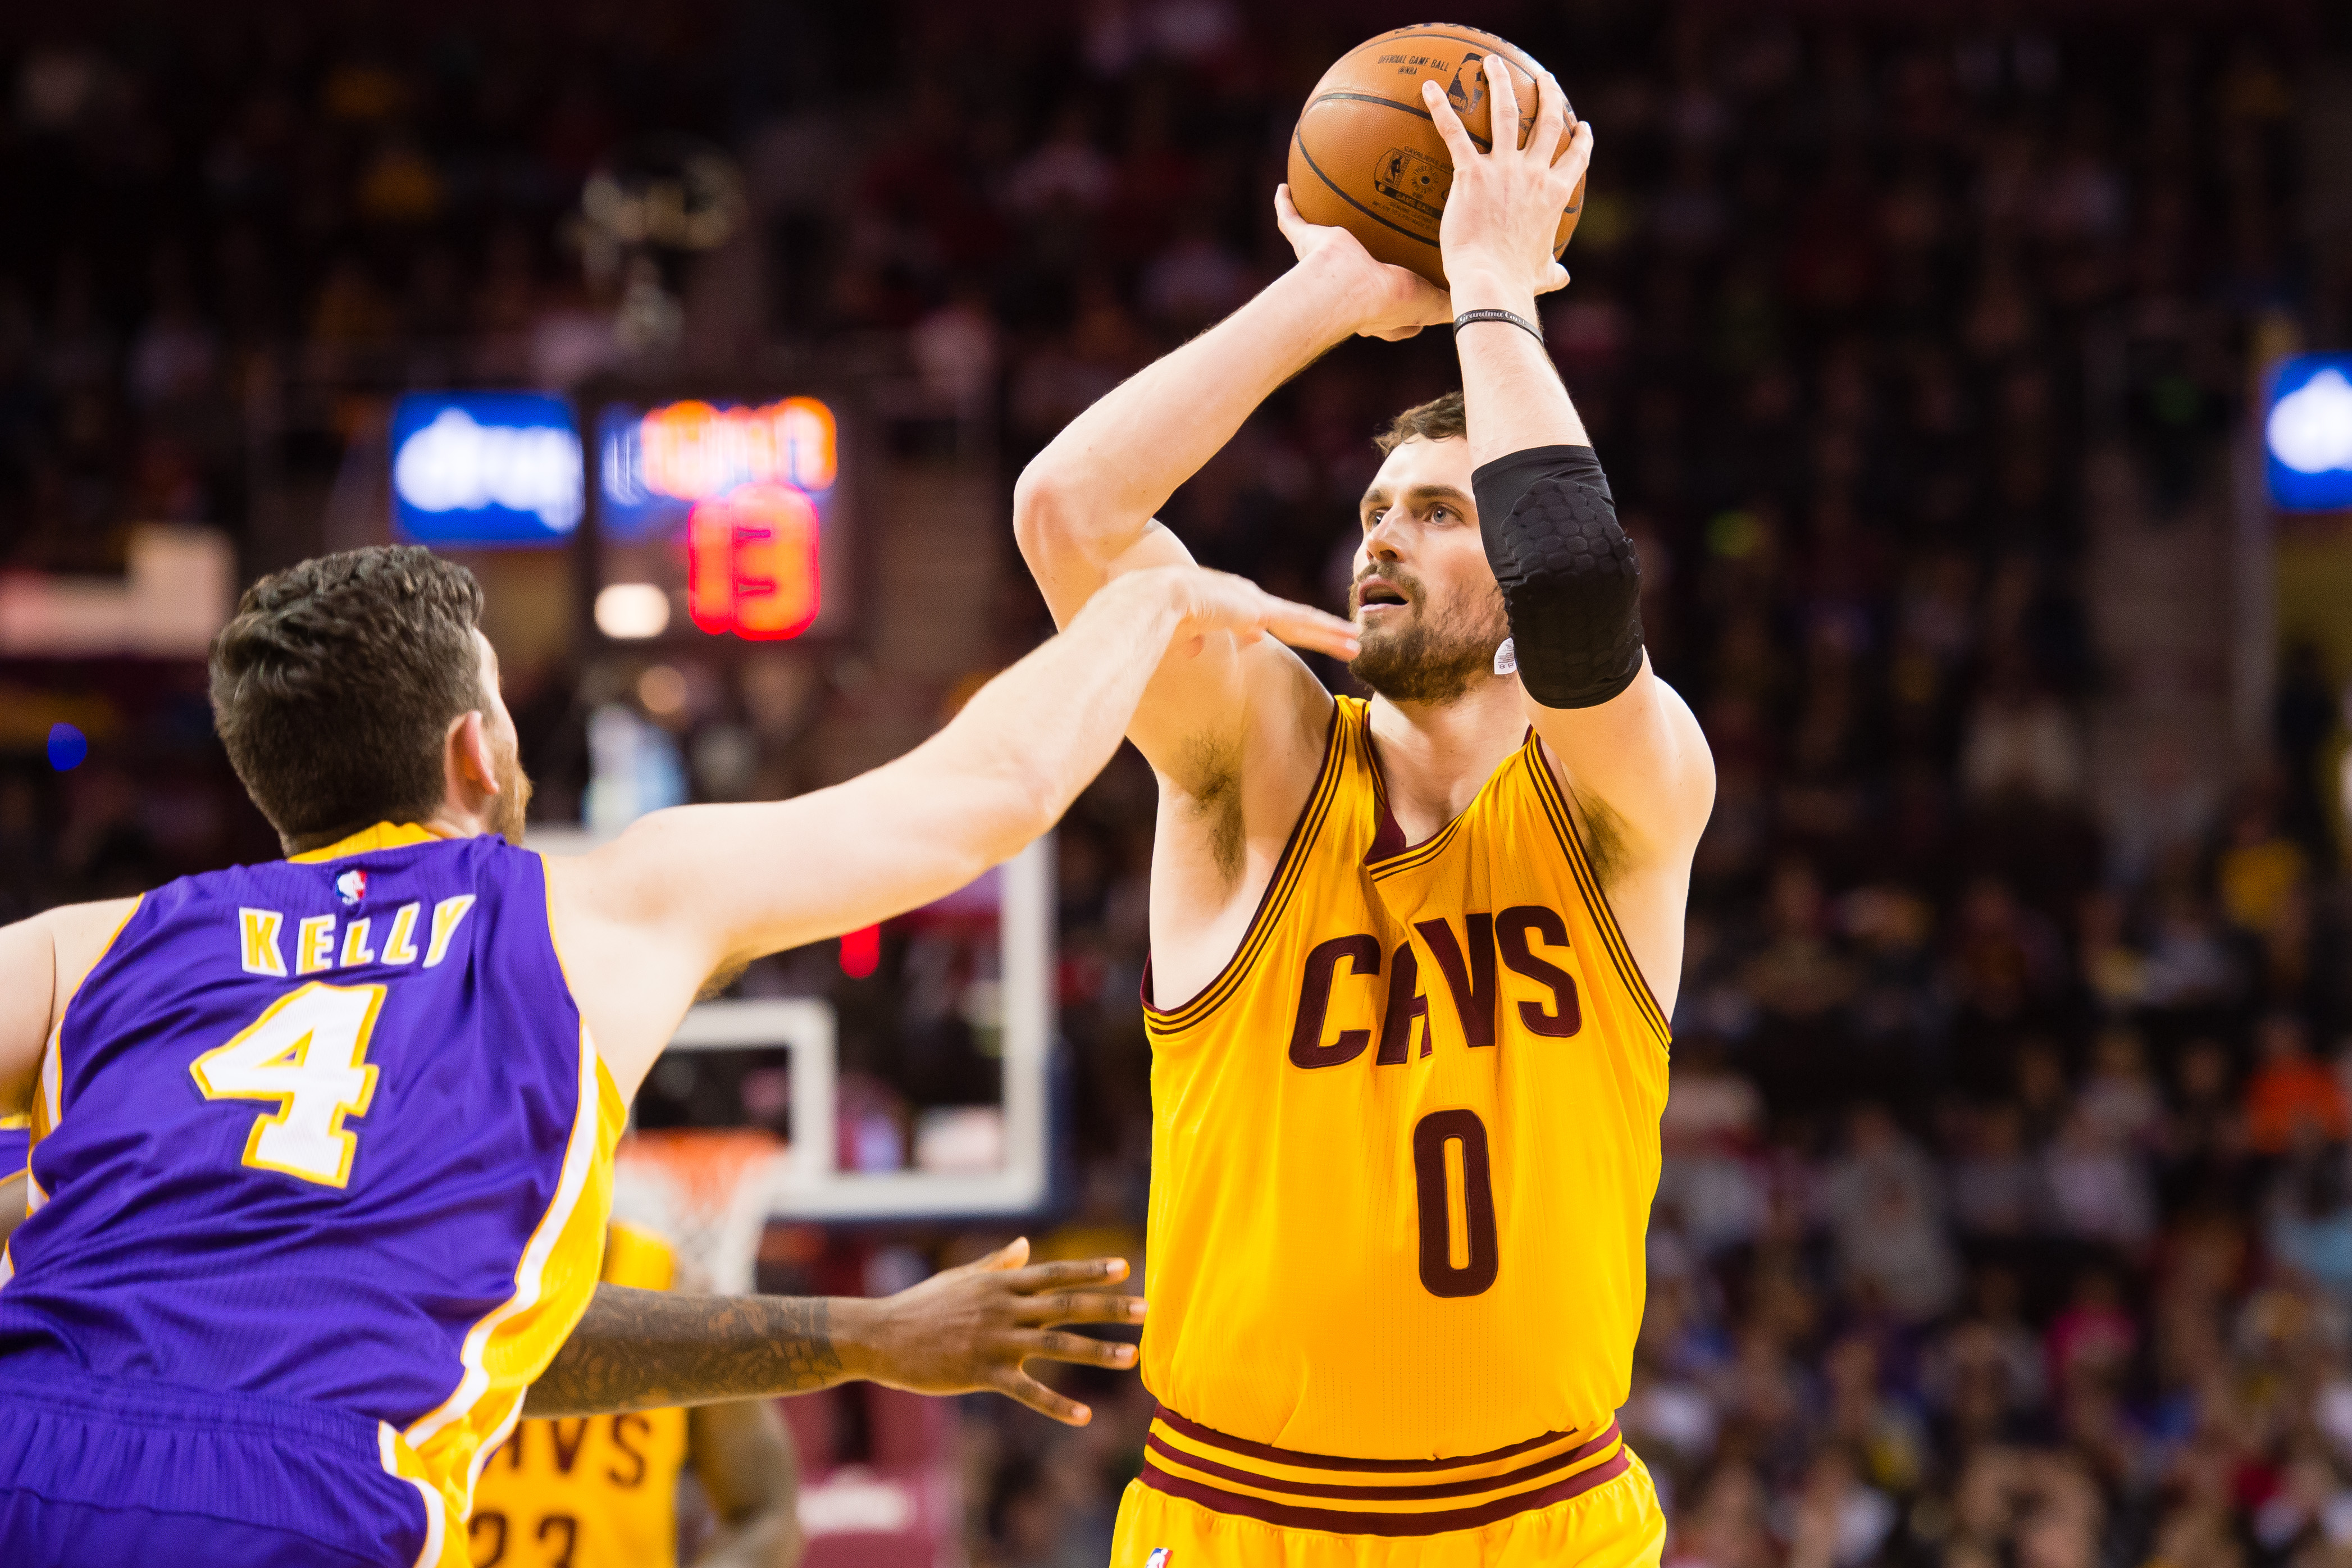 CLEVELAND, OH - FEBRUARY 8: Kevin Love #0 of the Cleveland Cavaliers shots over Ryan Kelly #4 of the Los Angeles Lakers during the first half at Quicken Loans Arena on February 8, 2015 in Cleveland, Ohio. NOTE TO USER: User expressly acknowledges and agrees that, by downloading and or using this photograph, User is consenting to the terms and conditions of the Getty Images License Agreement. (Photo by Jason Miller/Getty Images)  *** Local Caption *** Kevin Love